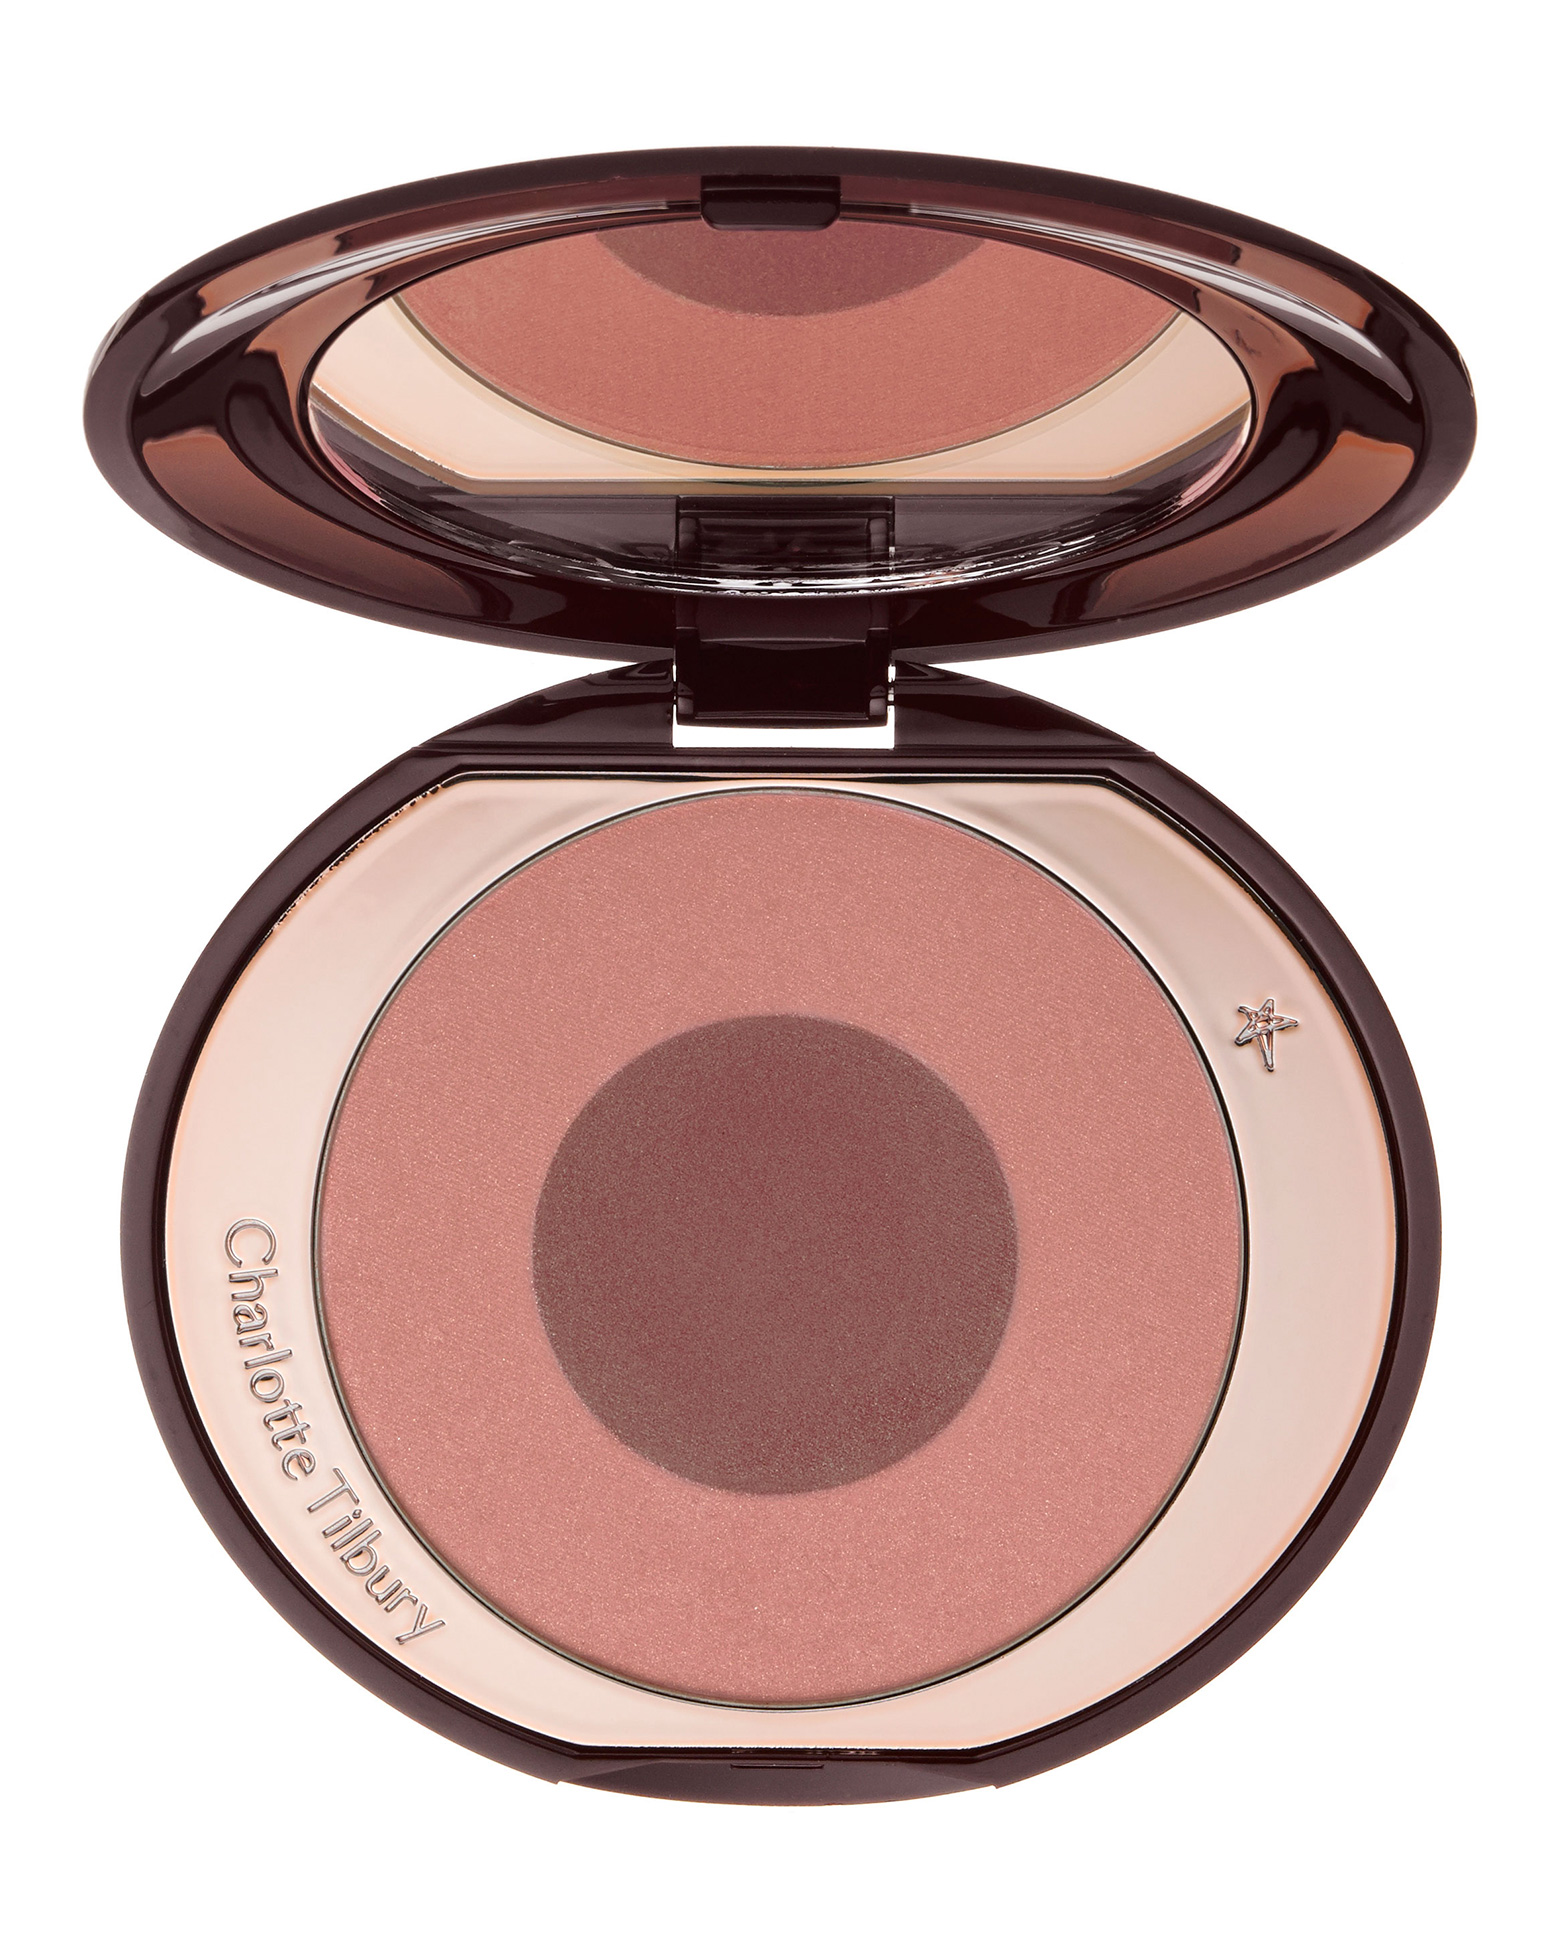 Charlotte Tilbury Cheek to Chic Blush – Pillow Talk